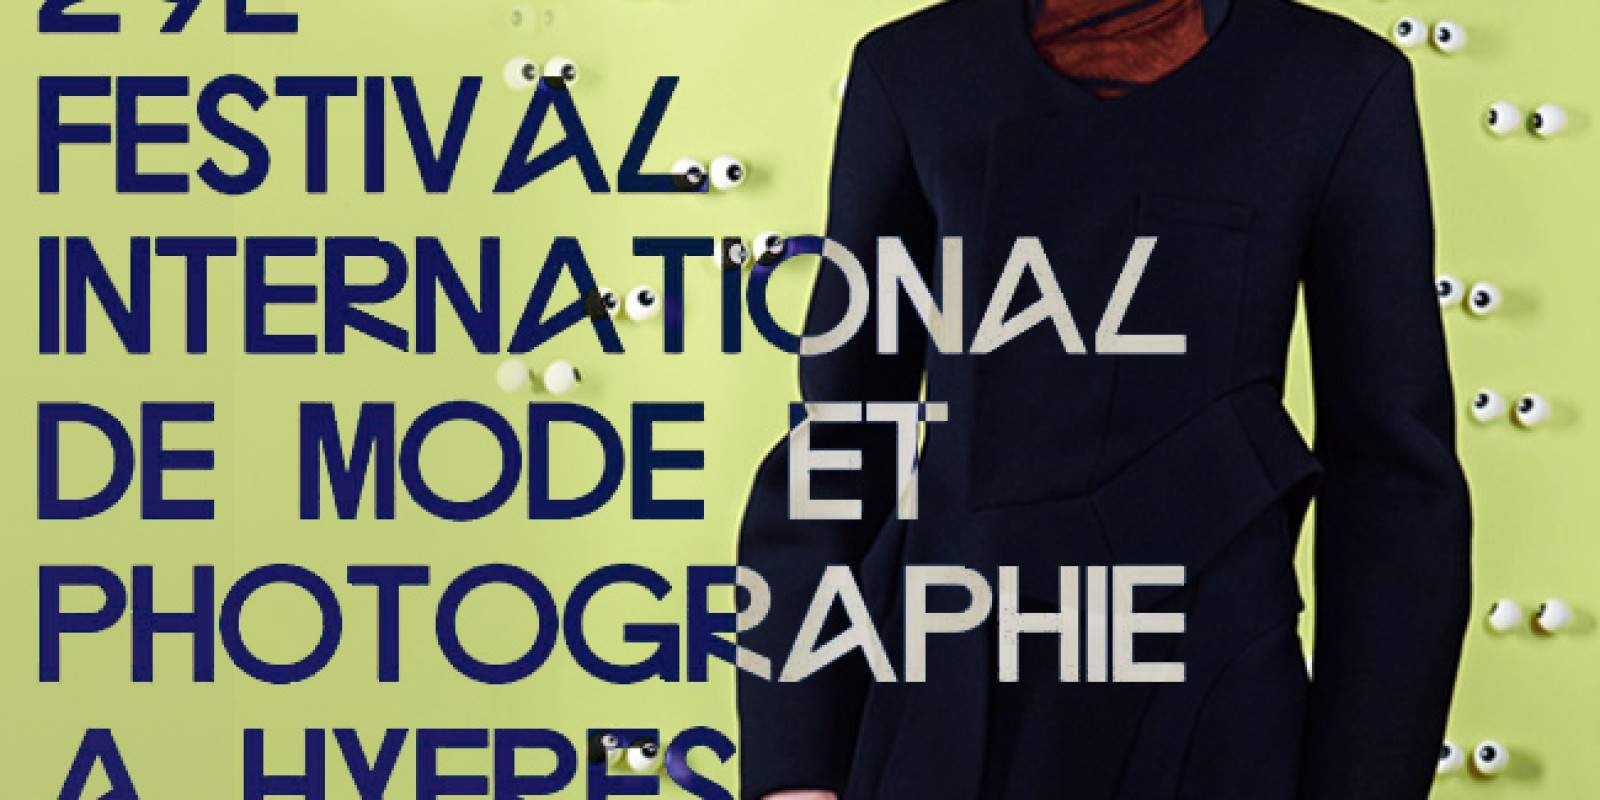 29-FESTIVAL-INTERNATIONAL-DE-MODE-ET-PHOTOGRAPHIE-A-HYERES-VILLA-NOAILLES